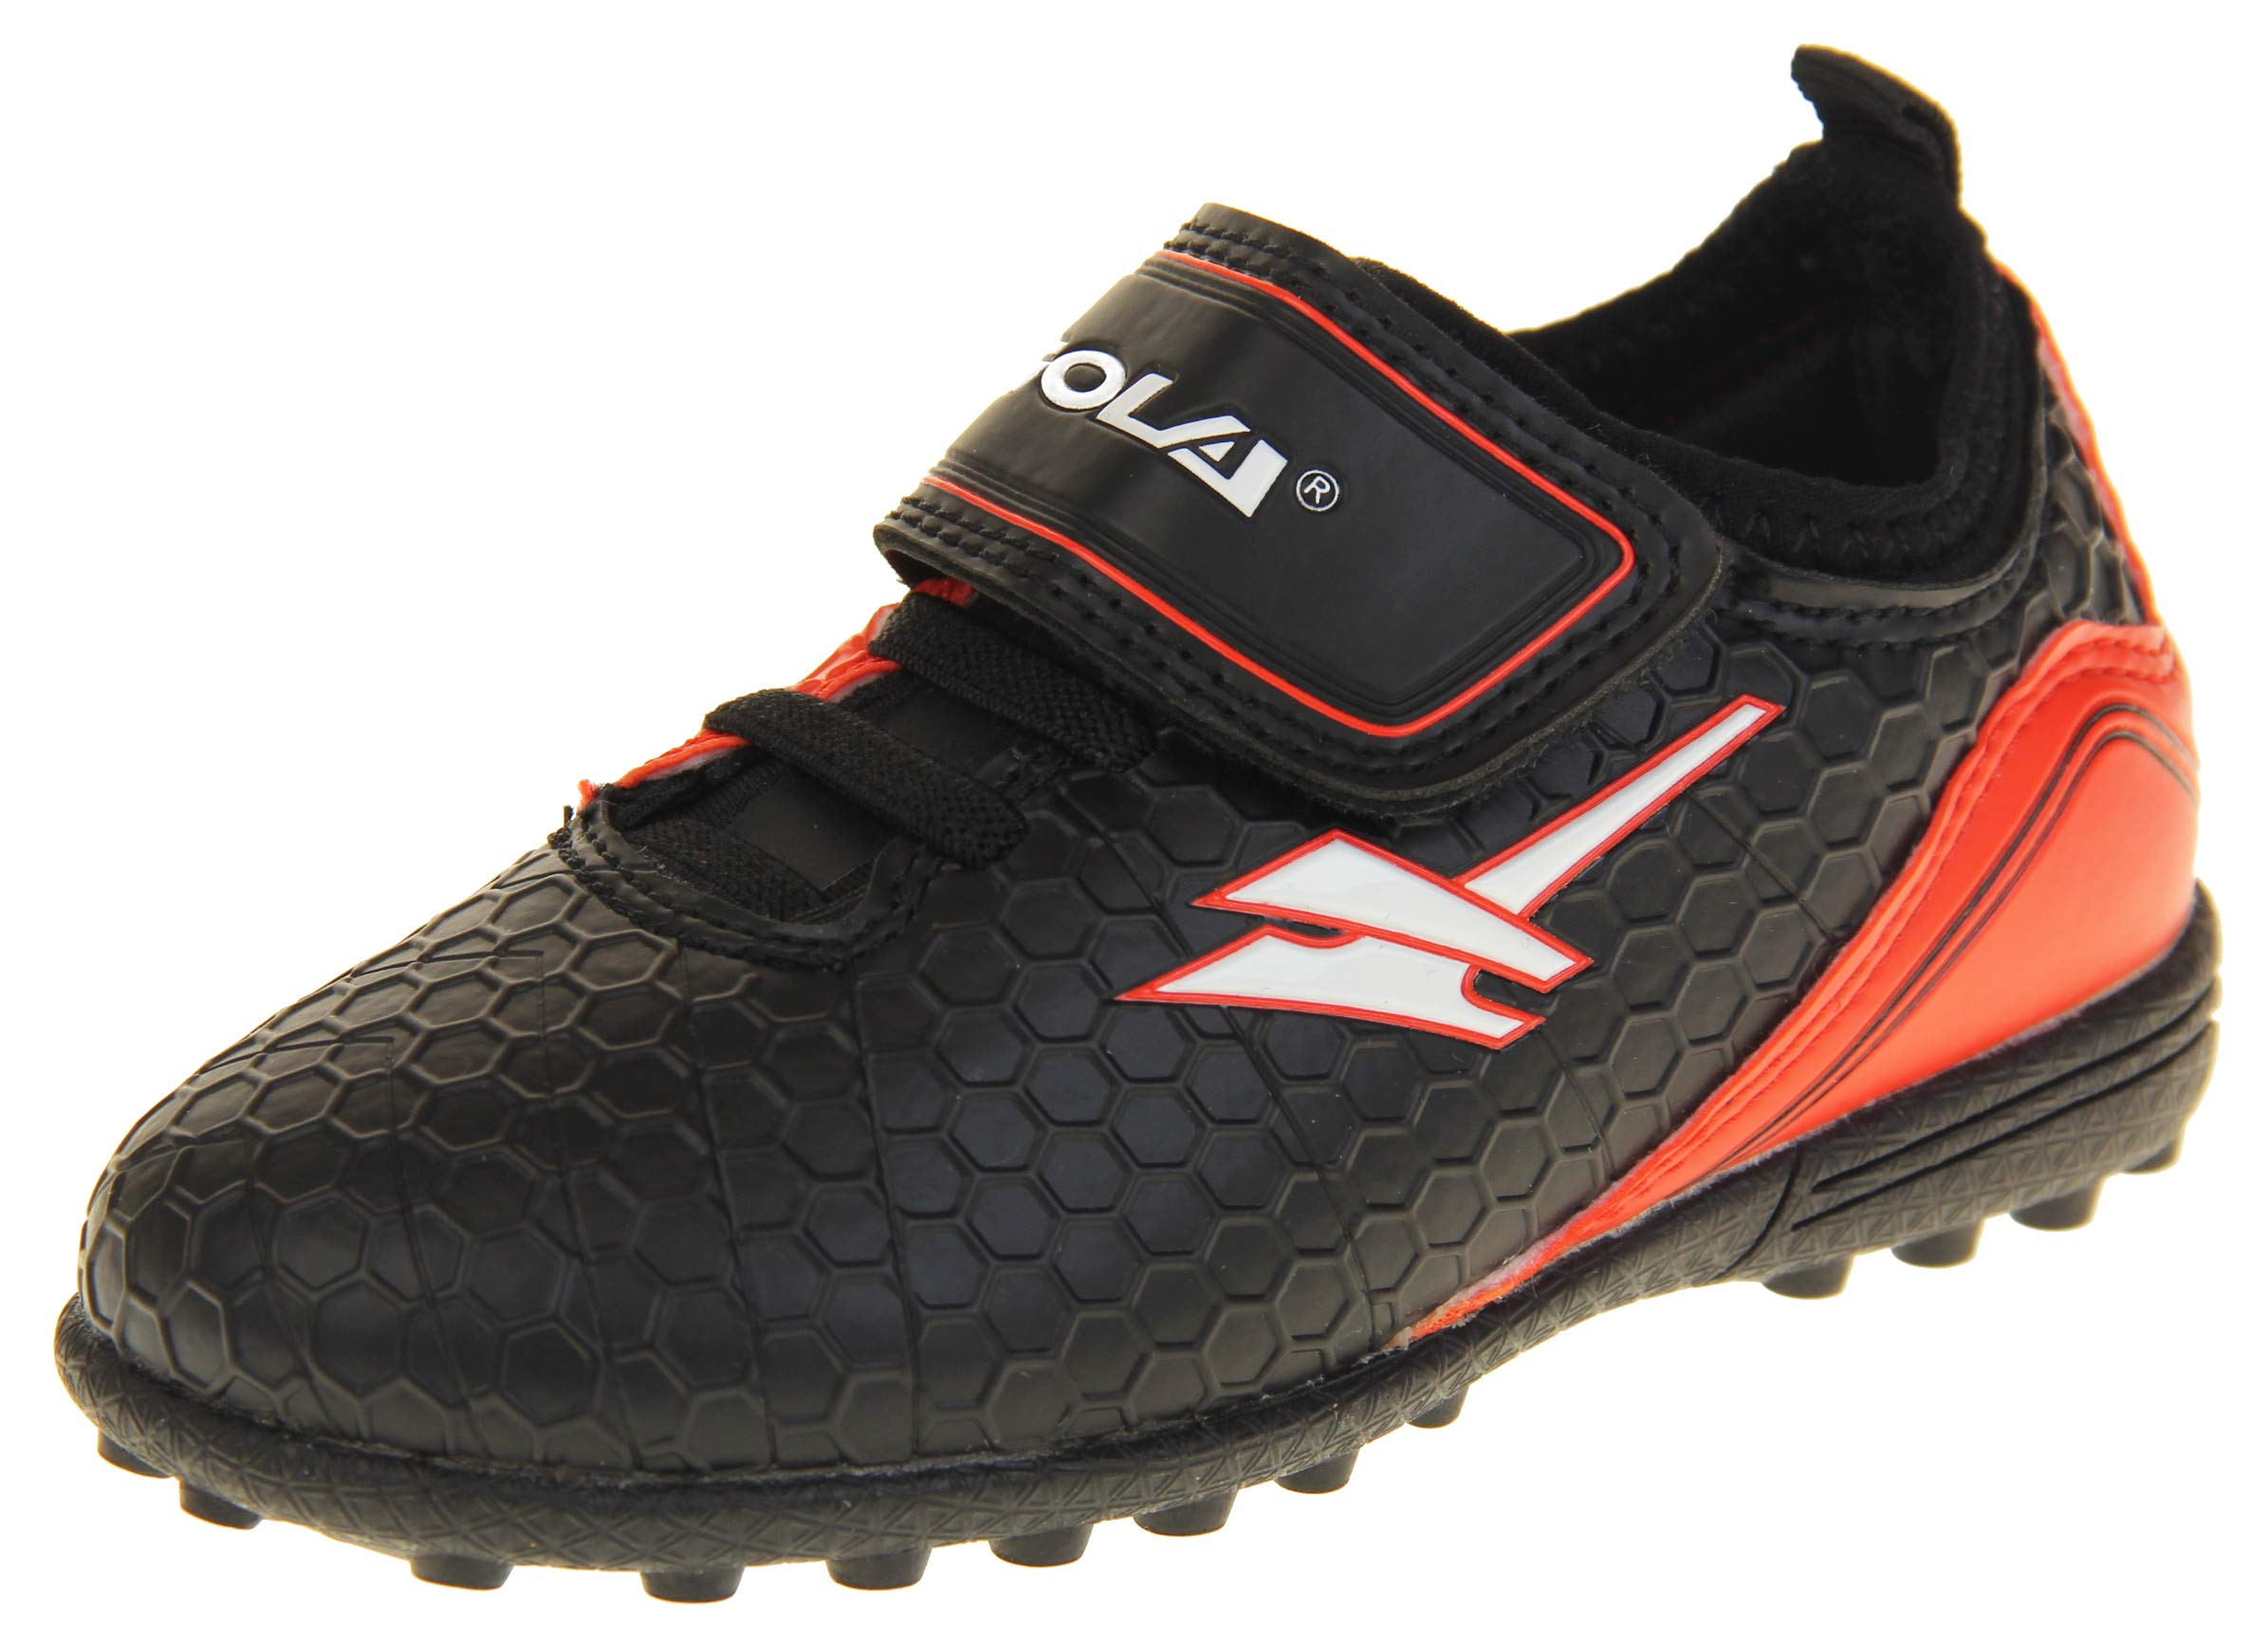 Gola Boys Astro Turf Kids Sports Touch Fastening Lace Up Shoes Football Trainers Black & Red 8 US Toddler